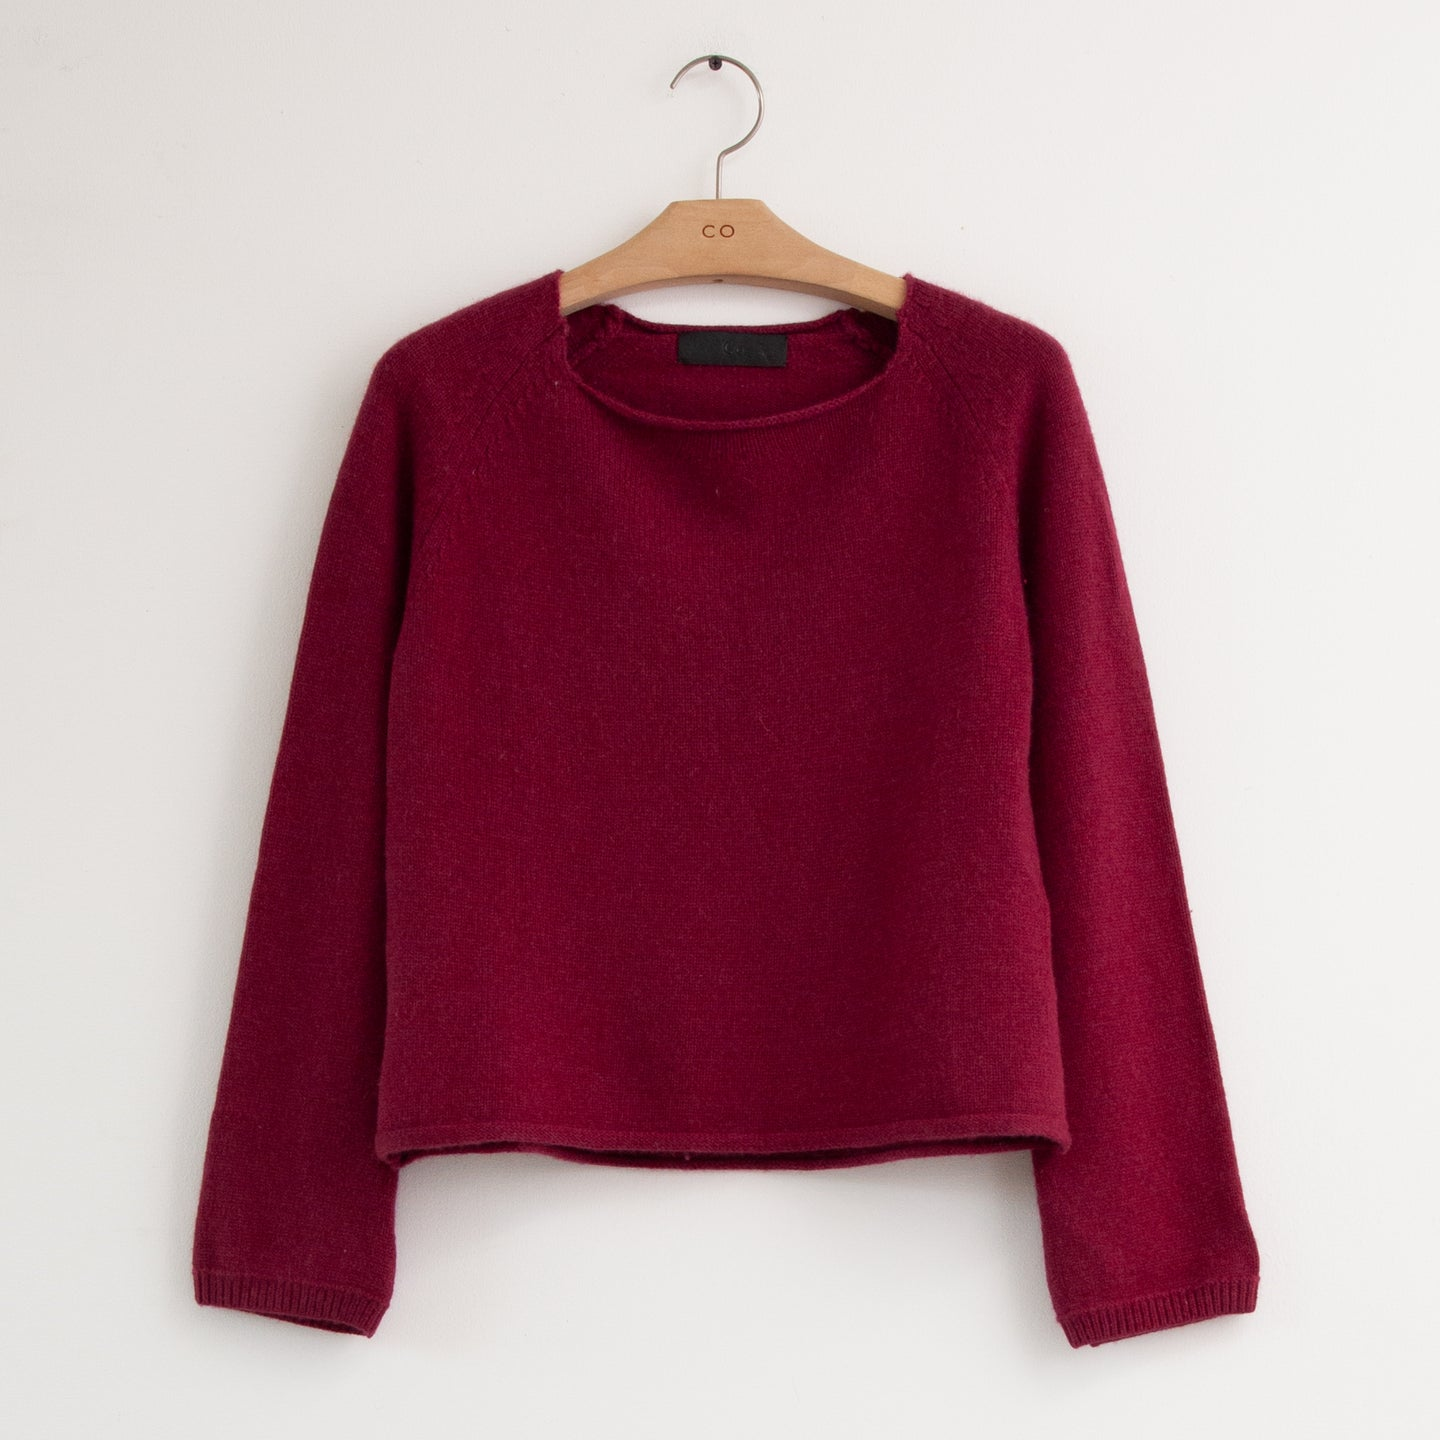 CO - Long sleeve round rolled neck sweater in bordeaux soft boiled wool